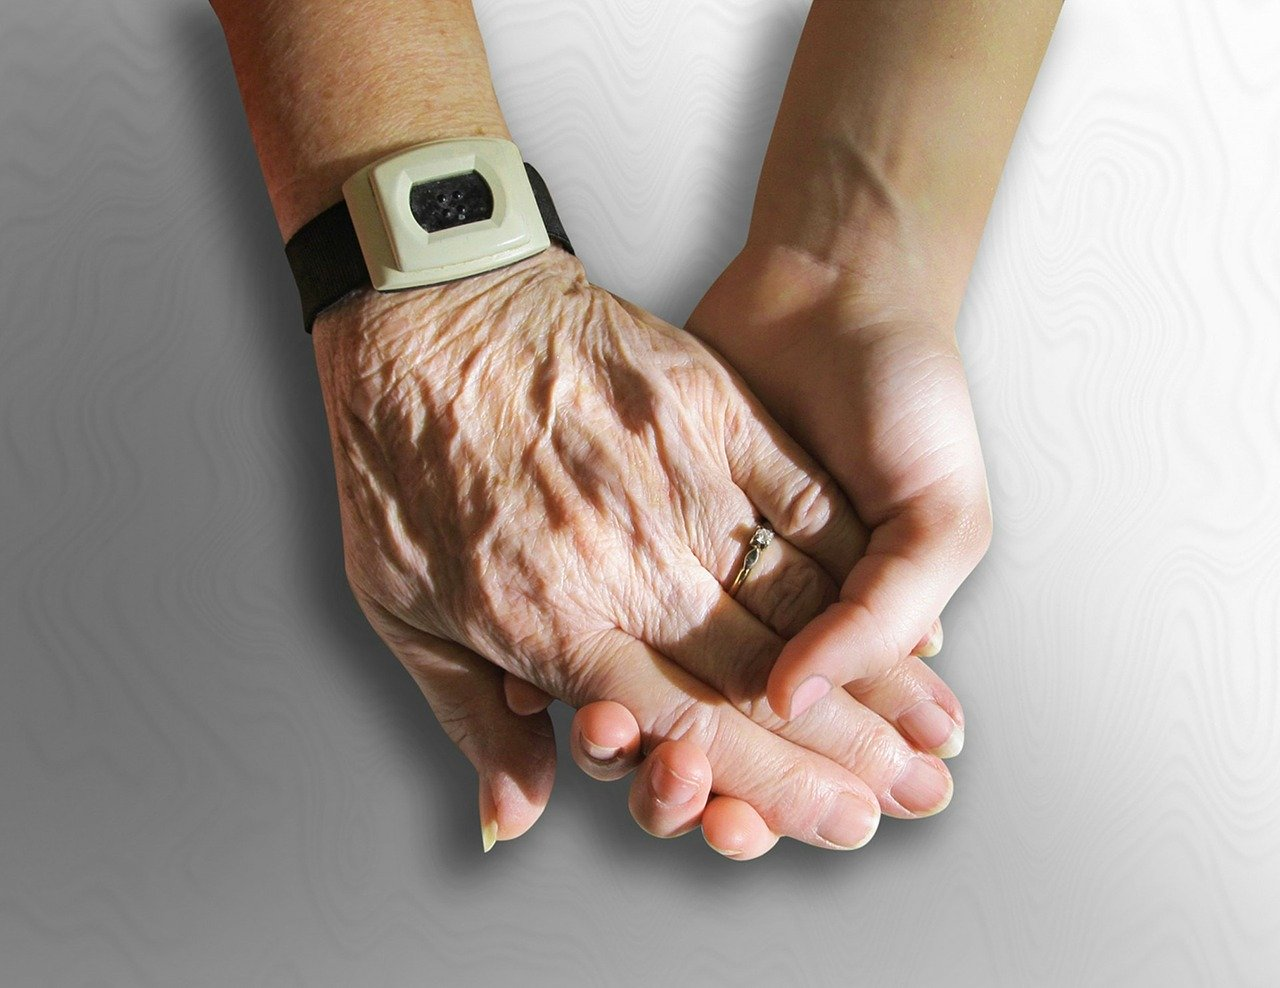 Image of elderly and young hands